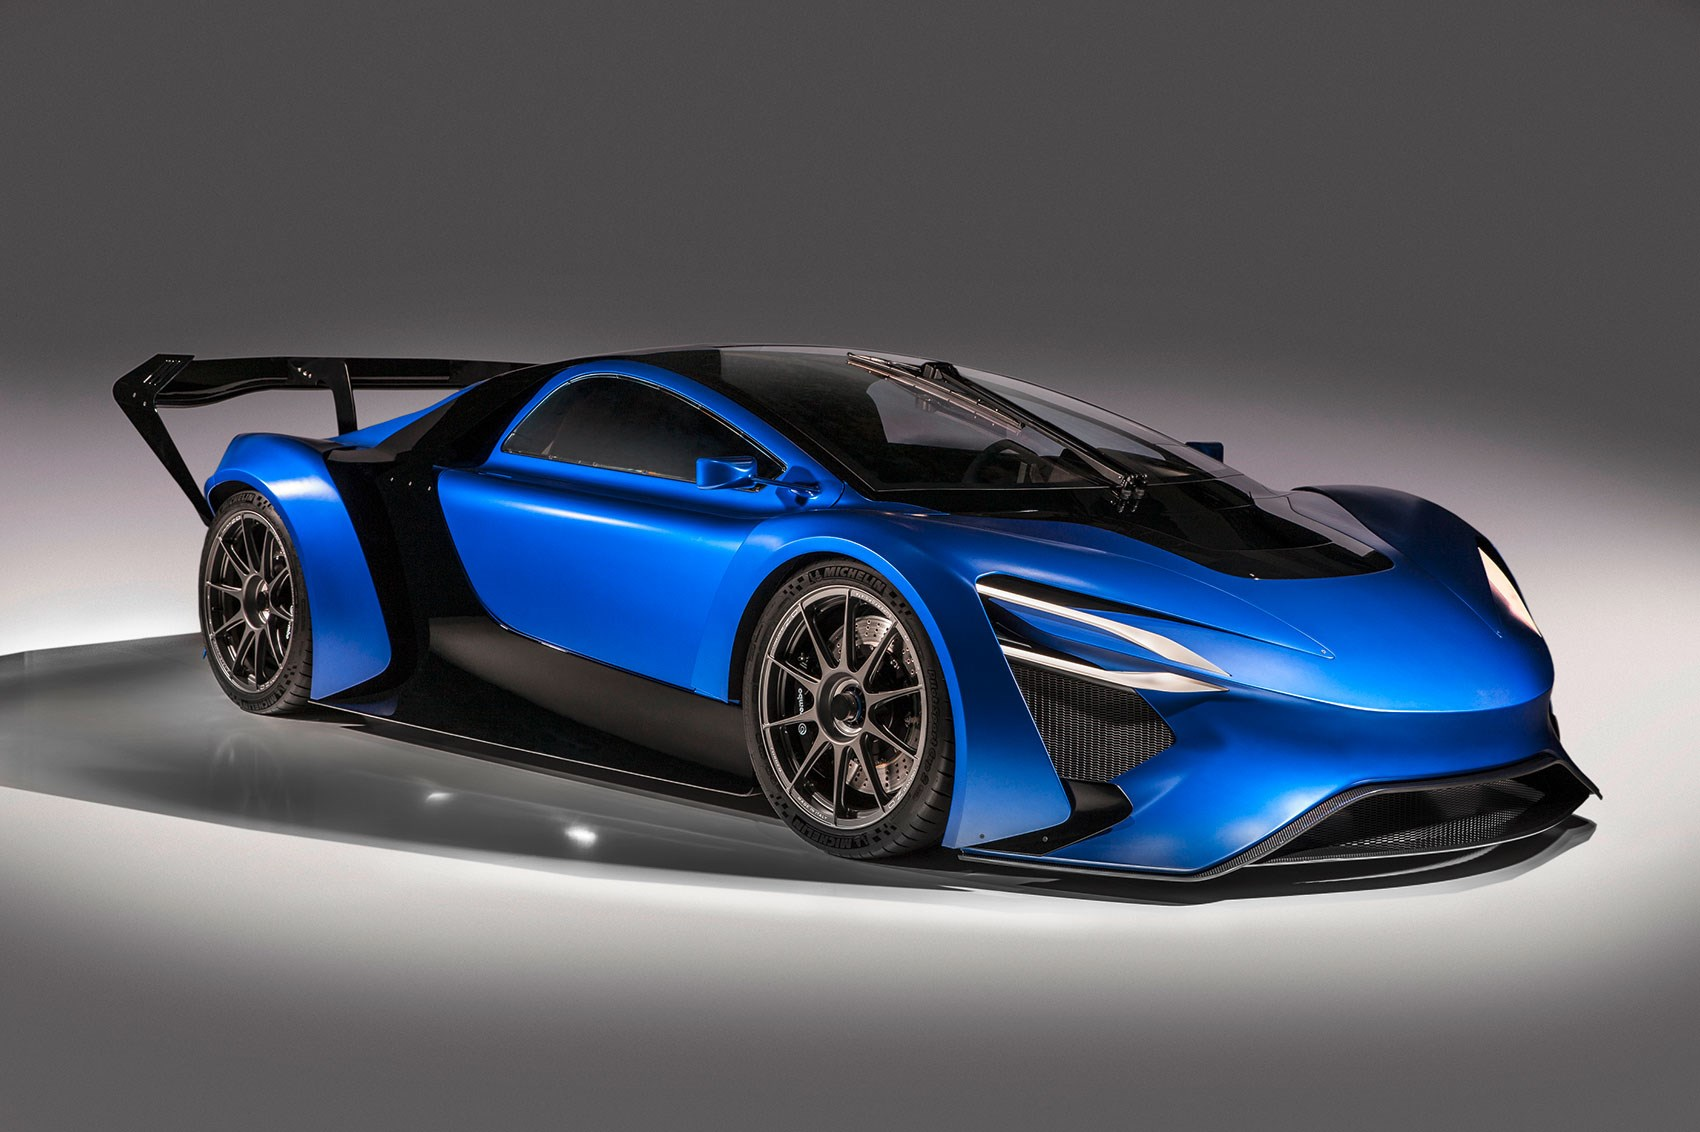 Techrules Tries To Rewrite The Rules New Trev Supercar